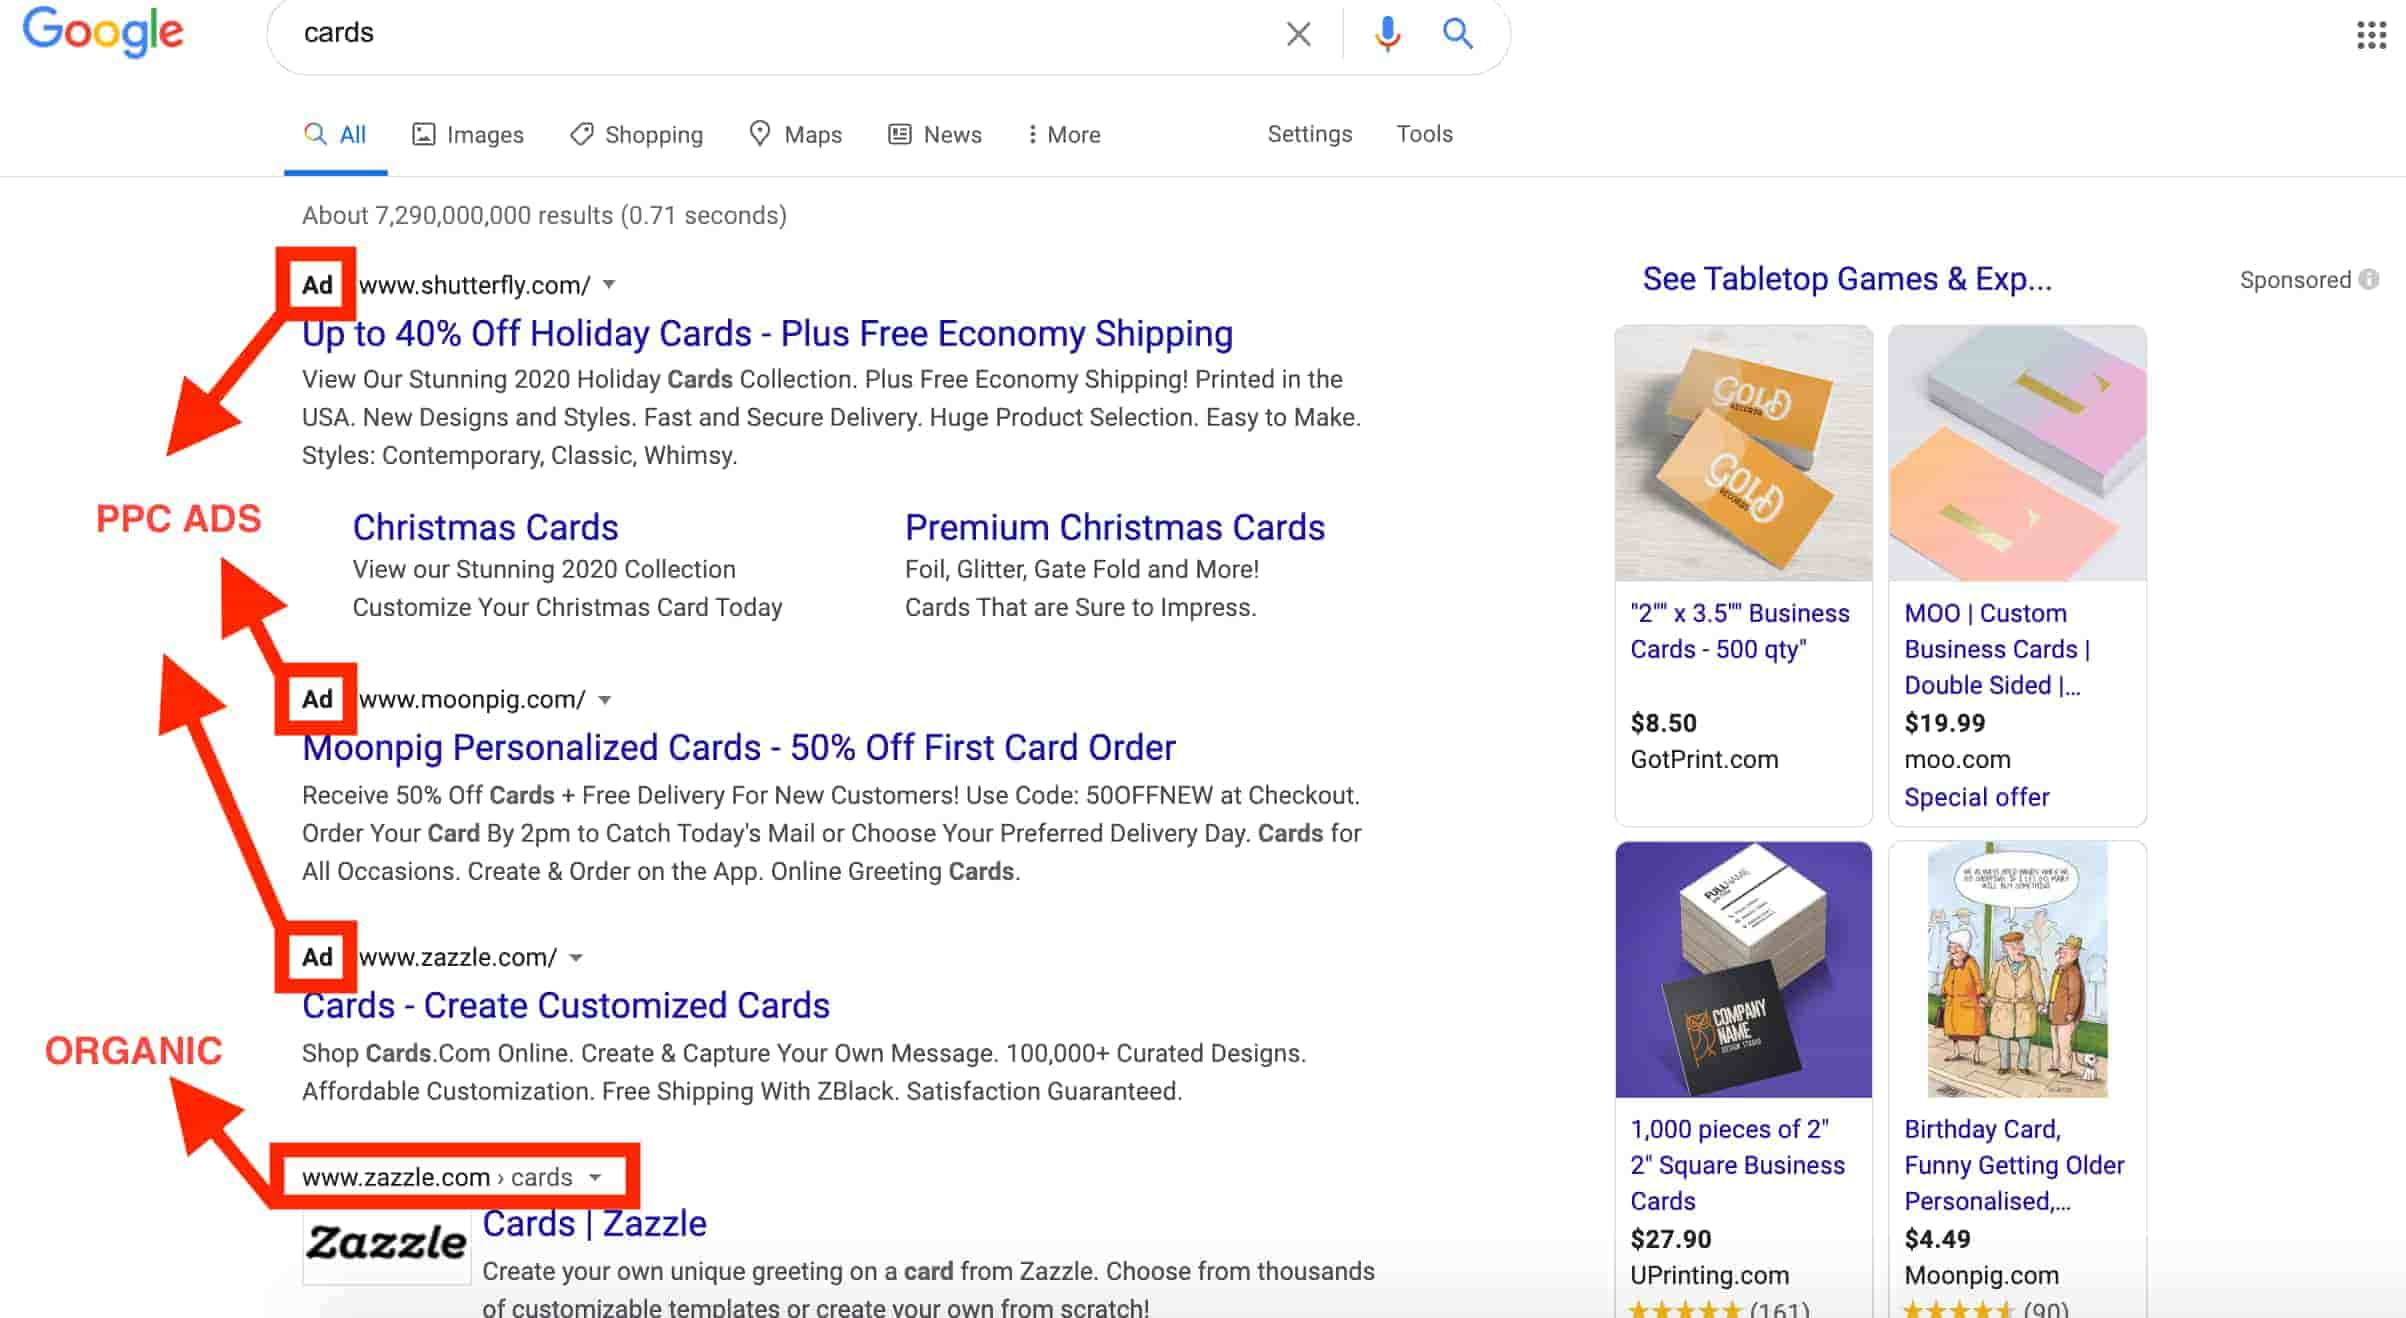 Pay-per-click (PPC) advertising helps small businesses display ads in search engines when people search a specific keyword